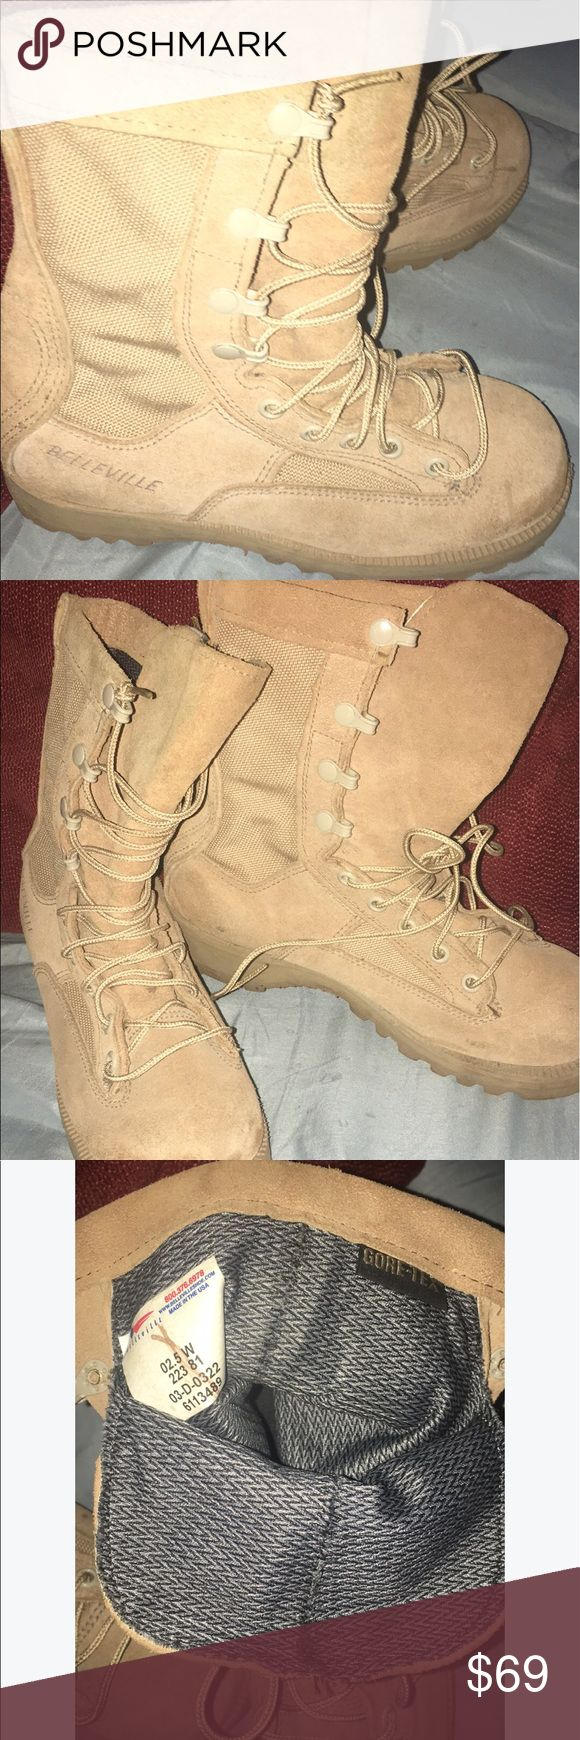 Belleville Women's Desert Combat Boots sz6.5 So so cool not only great looking but approved for flight and combat by the Army & Airforce ... totally waterproof ... and they look great on ! Suede and beautifully constructed to last out on the front line ... awesome looking and comfortable ... this momma wears army boots 😊 Belleville Shoes Lace Up Boots